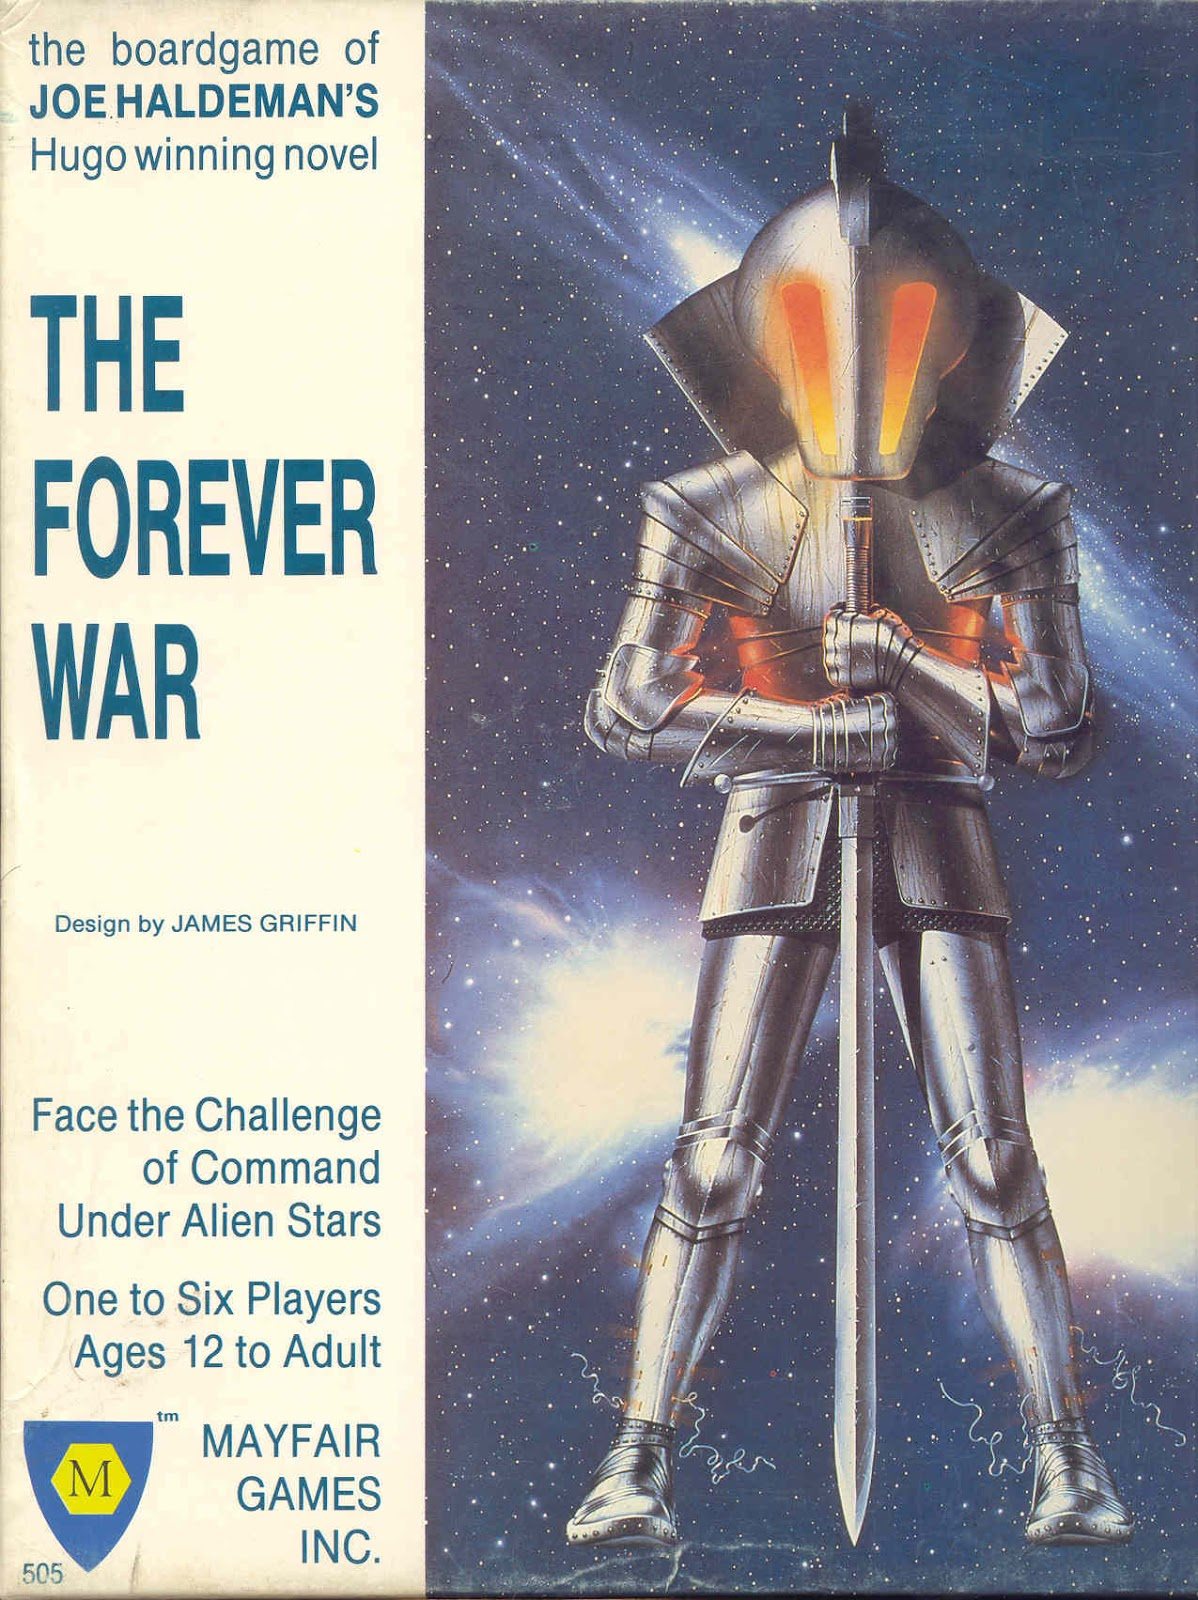 forever war essay Ending the forever war: one year after president obama's ndu speech by harold hongju koh may 23, 2014 by harold hongju koh may 23, 2014.